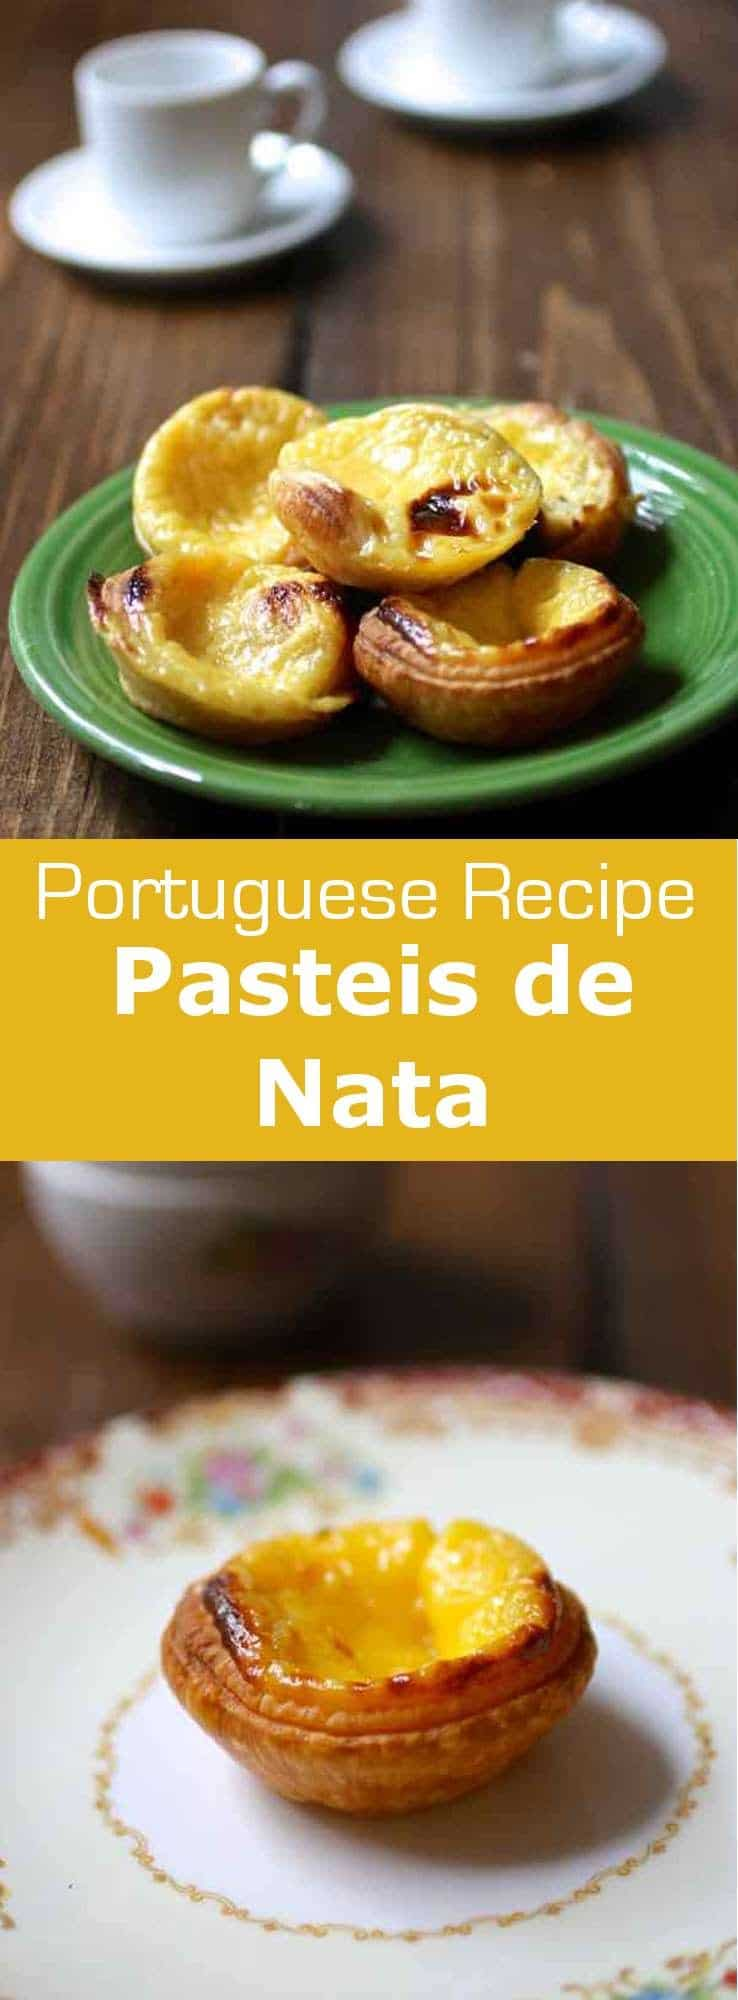 Pasteis de nata (Pasteis de Belem) are deliciously golden custard tarts that are famous all throughout Portugal and Portuguese-speaking countries. #Portugal #pastries #pastry #dessert #196flavors